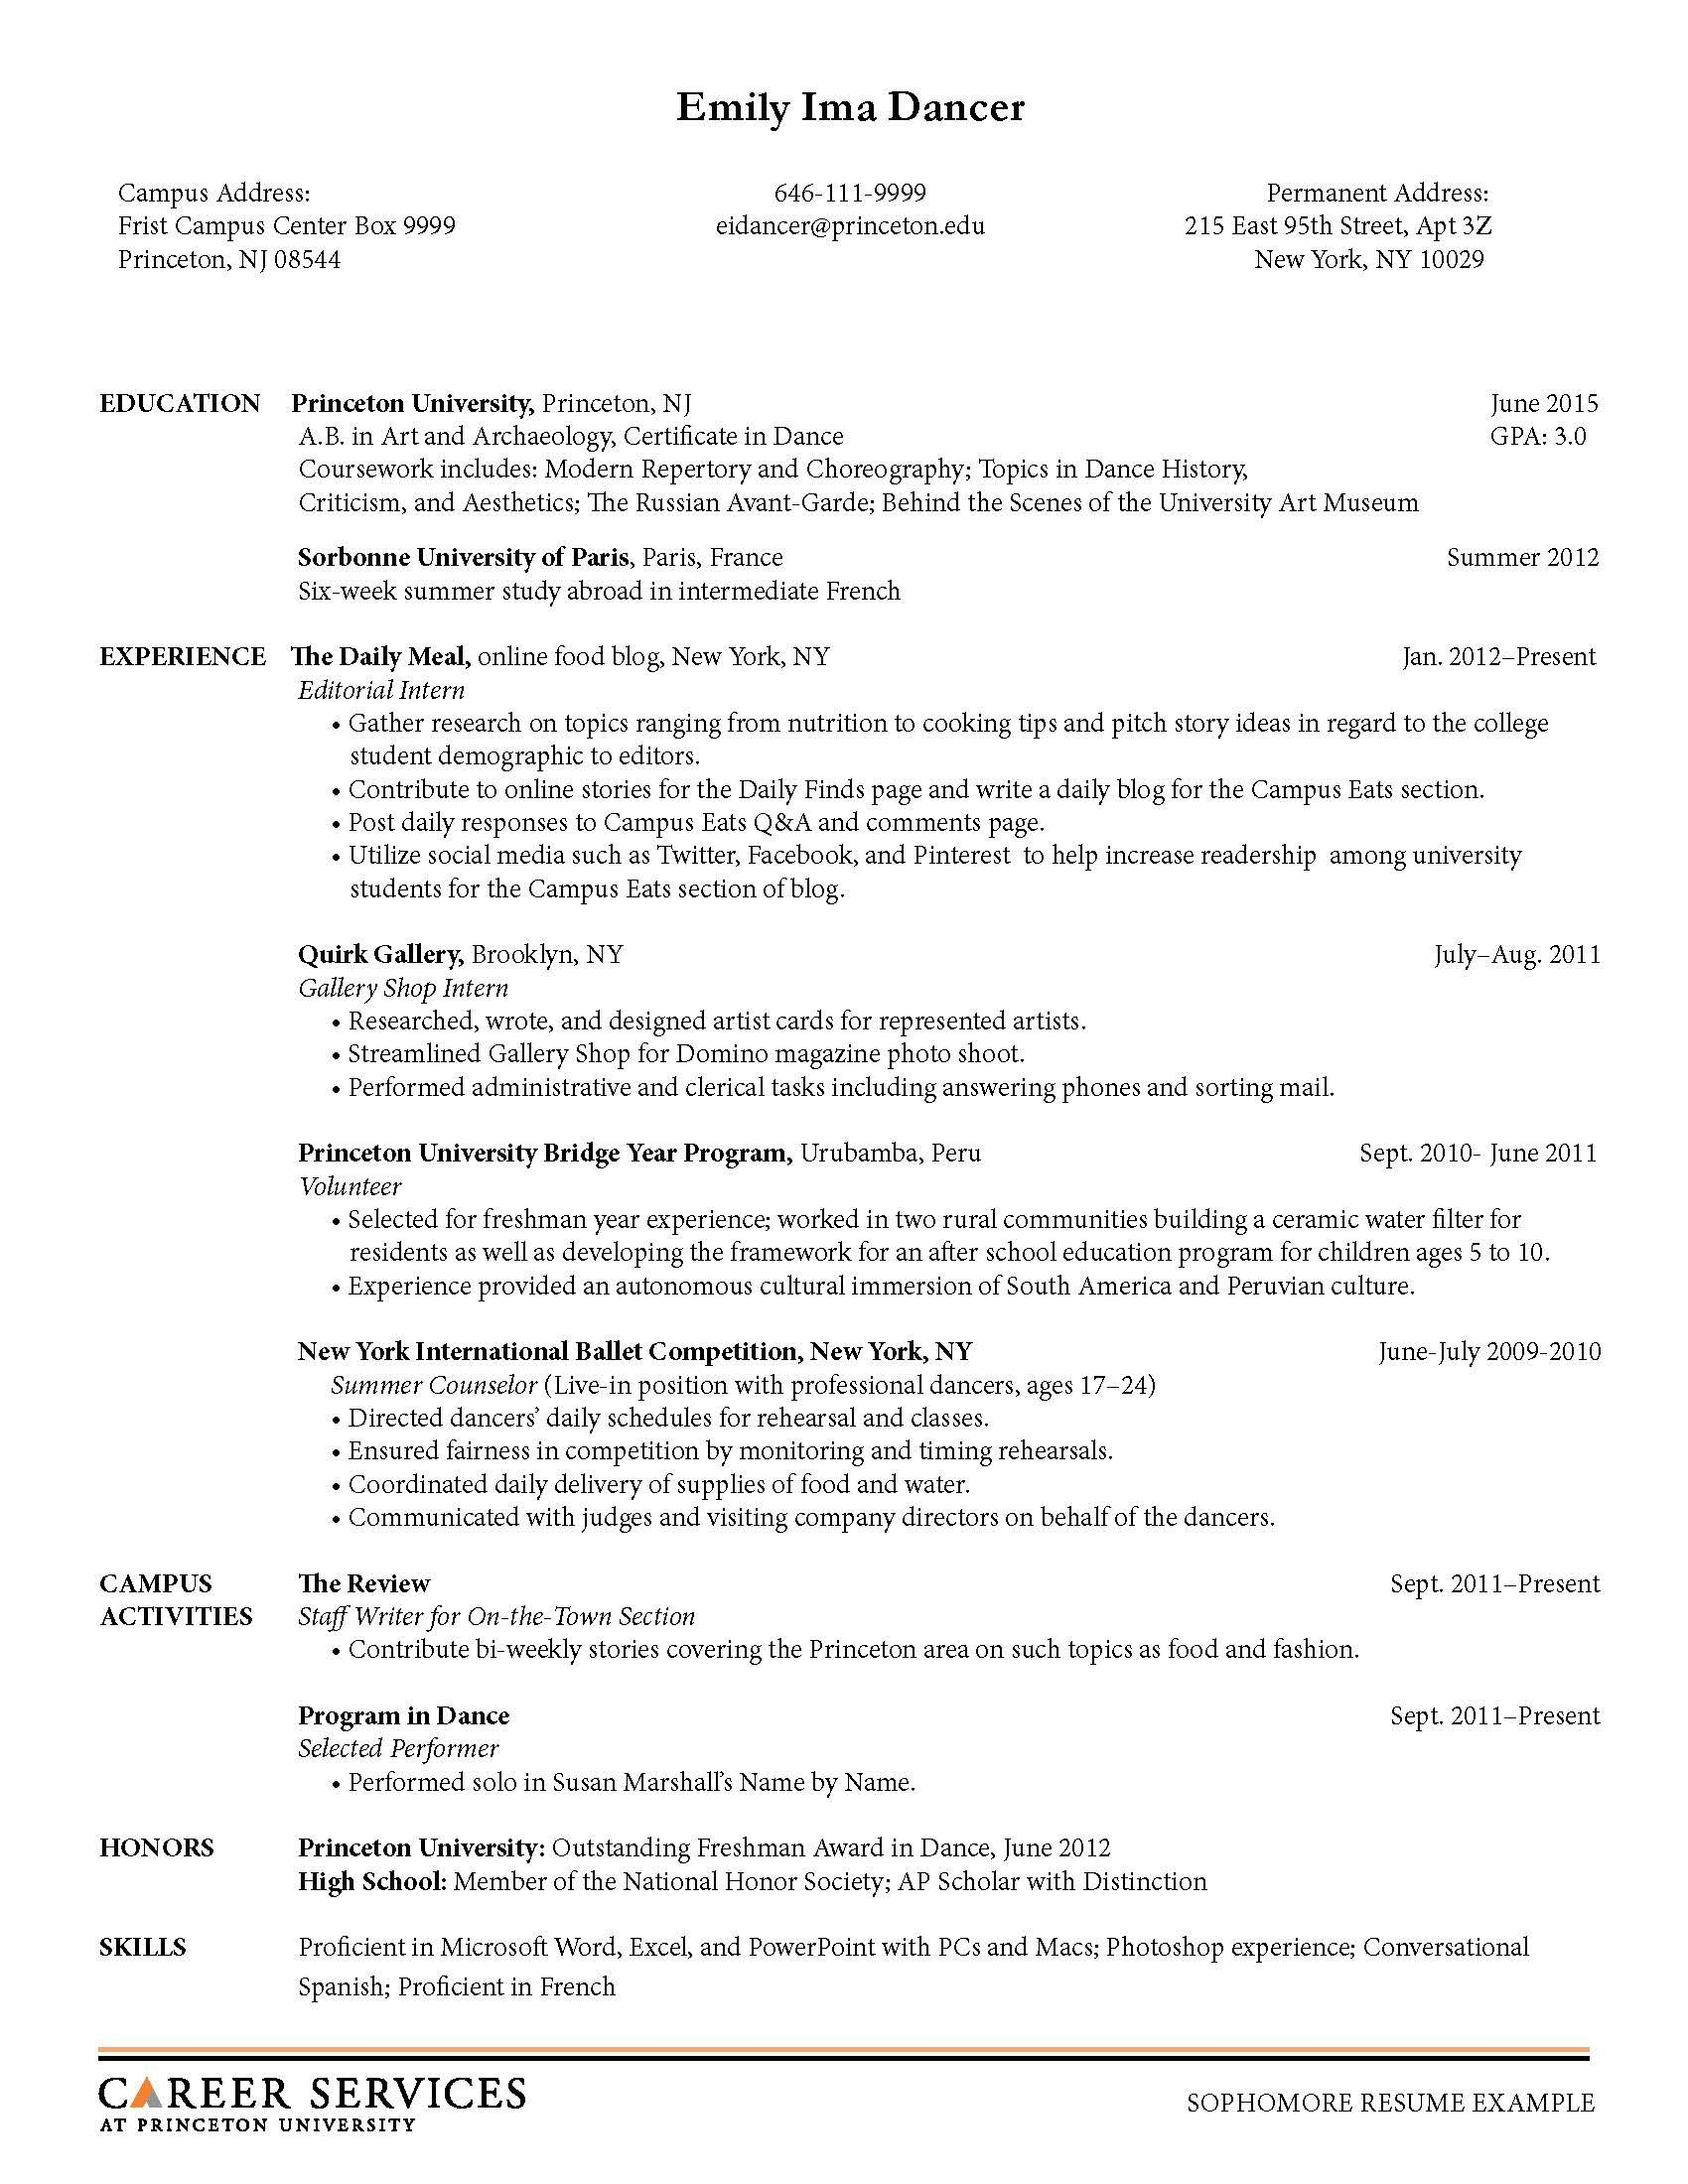 Picnictoimpeachus  Ravishing Sample Resume Resume And Career On Pinterest With Glamorous Customer Service Manager Resume Besides Marketing Resume Samples Furthermore Sample Professional Resume With Cute Resume Template Free Download Also How To Create A Resume On Word In Addition Dental Hygienist Resume And Brand Ambassador Resume As Well As Perfect Resume Examples Additionally Free Resume Builder Microsoft Word From Pinterestcom With Picnictoimpeachus  Glamorous Sample Resume Resume And Career On Pinterest With Cute Customer Service Manager Resume Besides Marketing Resume Samples Furthermore Sample Professional Resume And Ravishing Resume Template Free Download Also How To Create A Resume On Word In Addition Dental Hygienist Resume From Pinterestcom